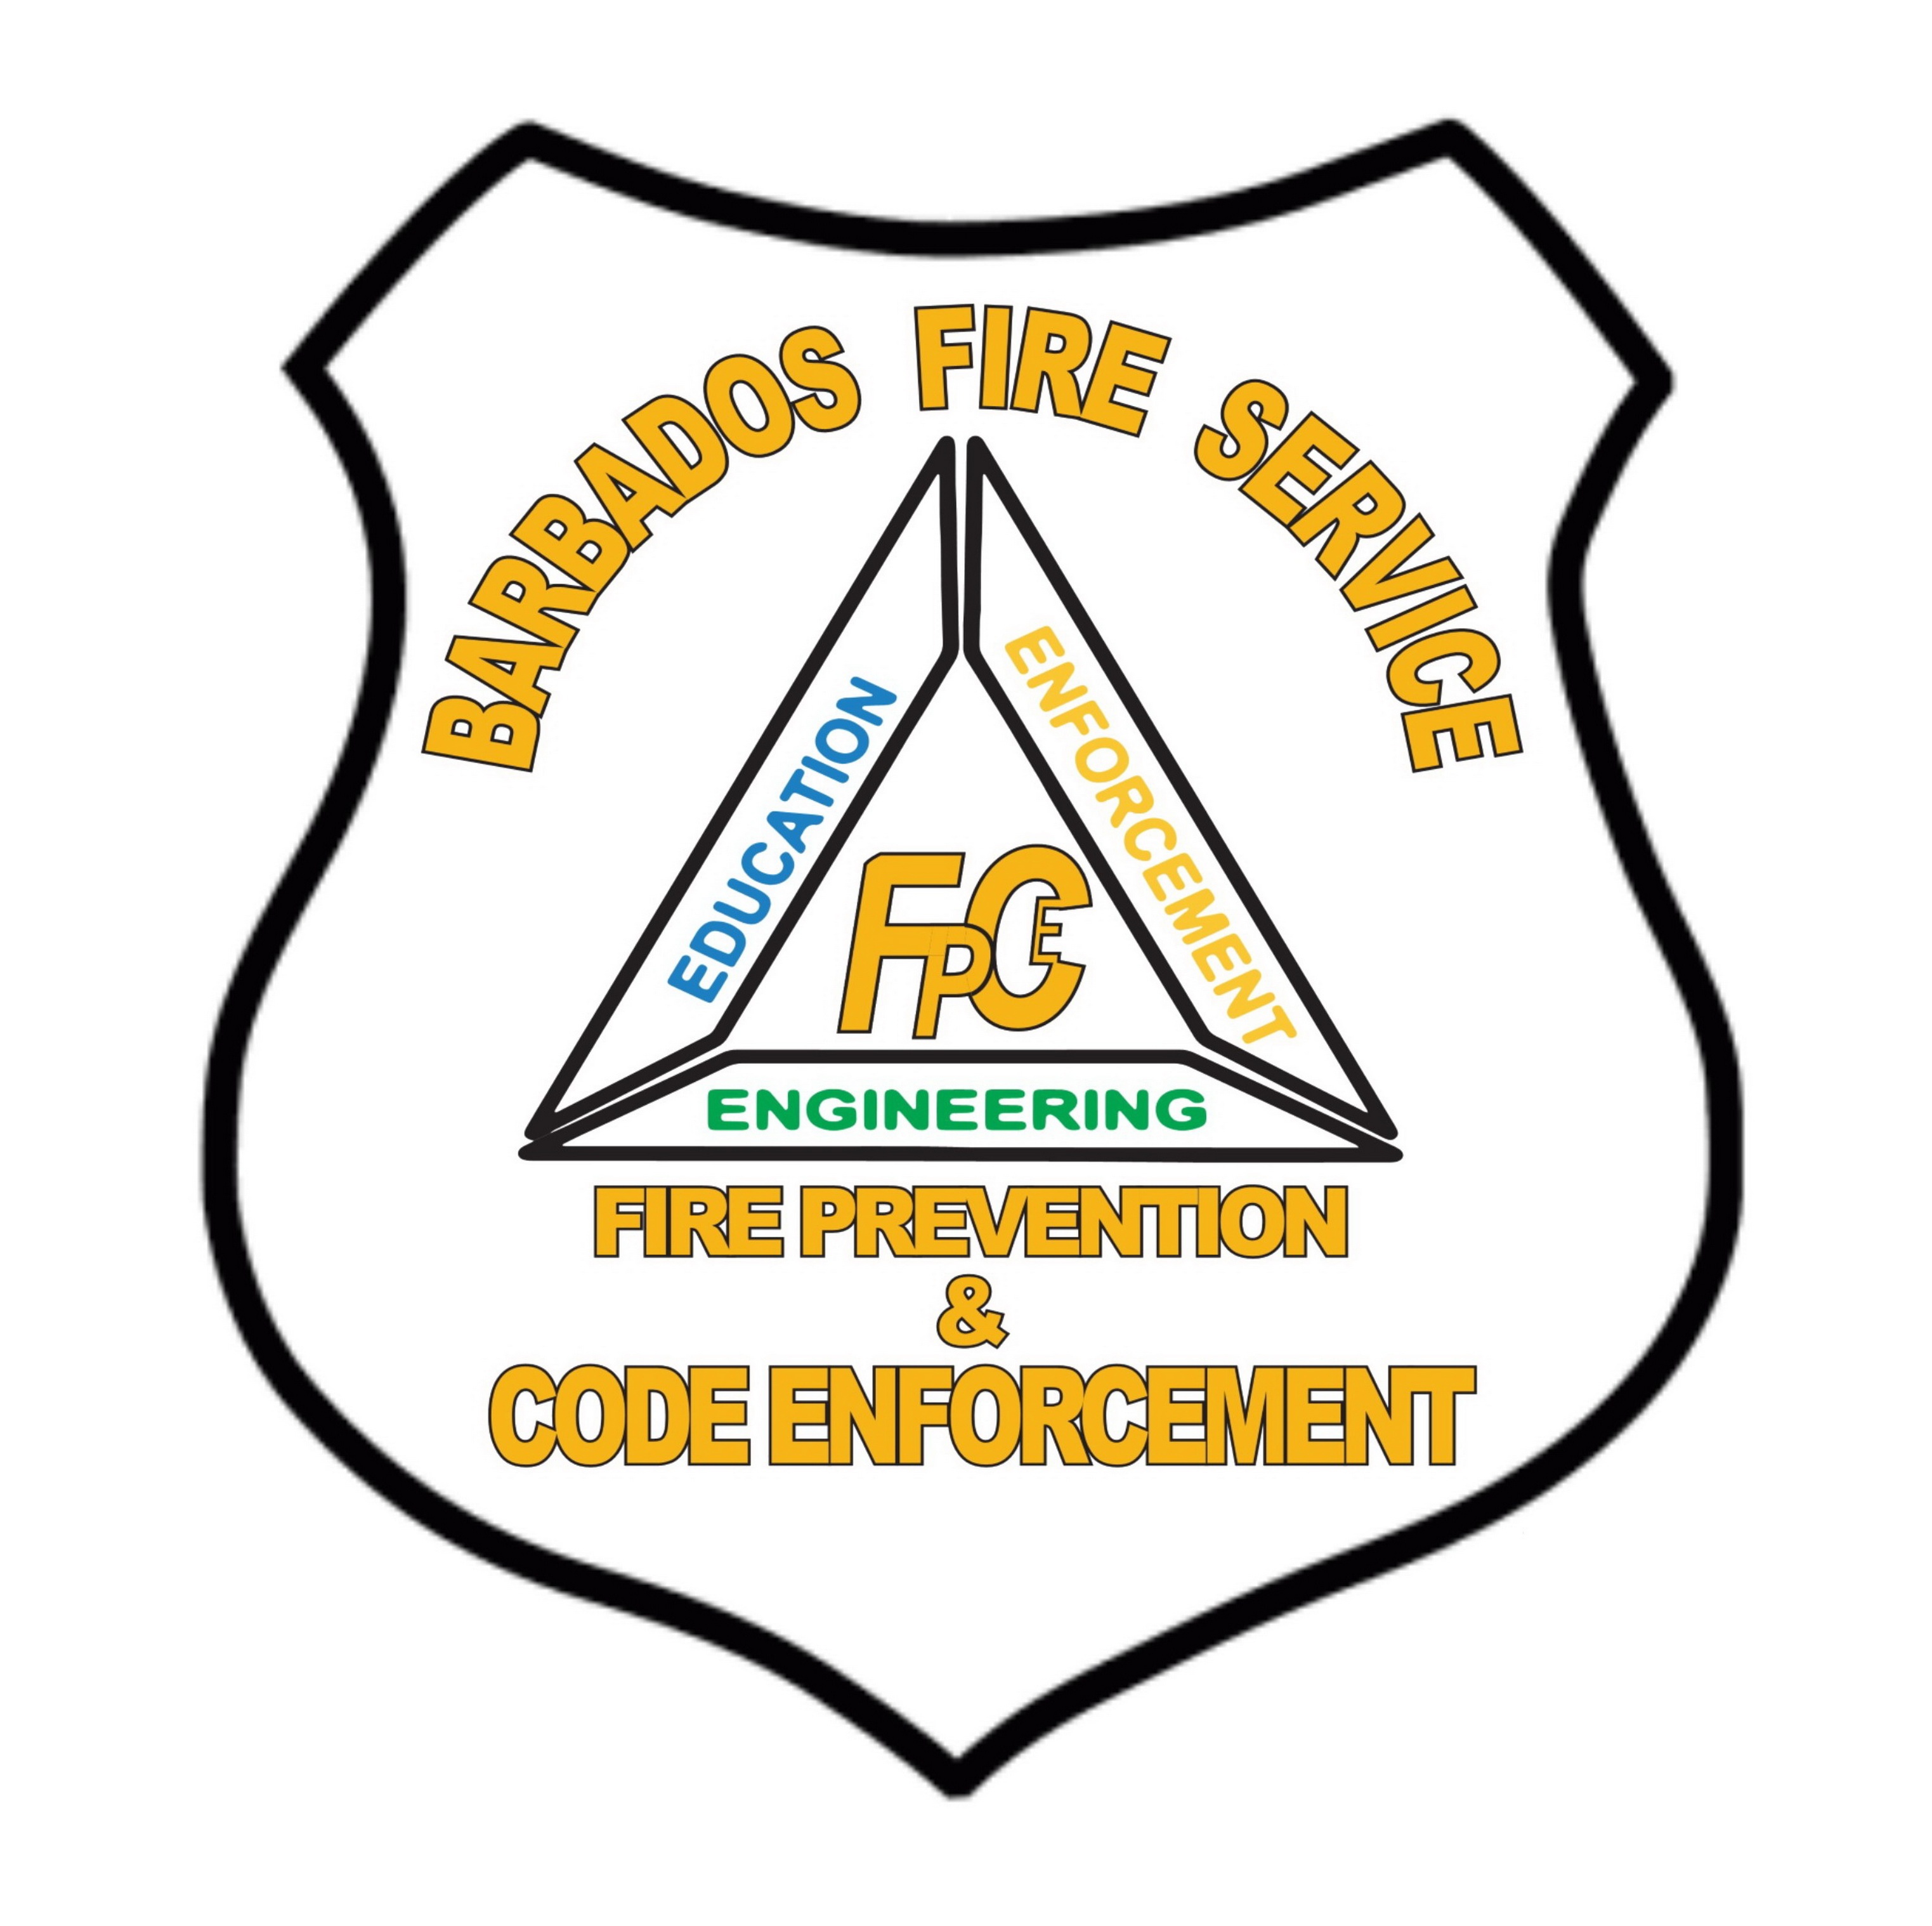 fire prevention promotion logo